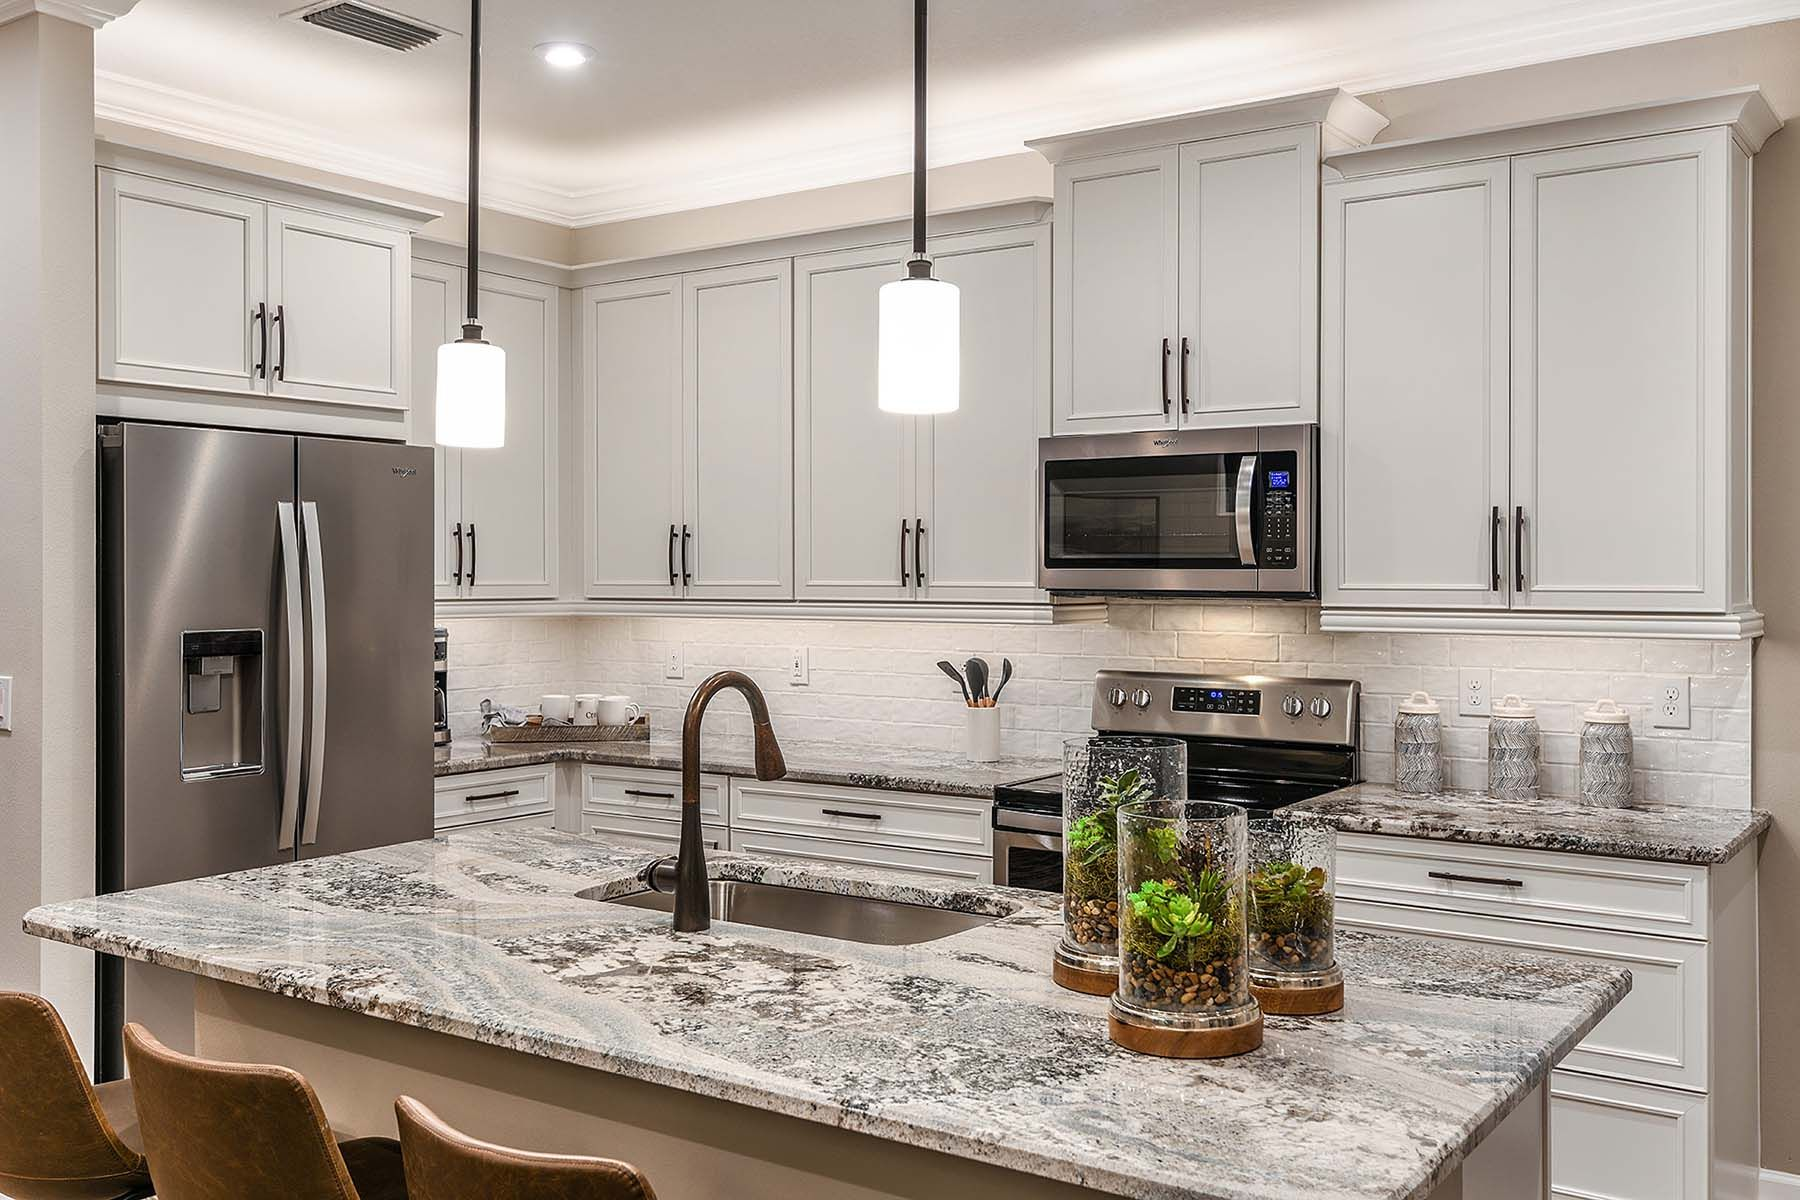 Kitchen featured in the Largo By Mattamy Homes in Fort Myers, FL